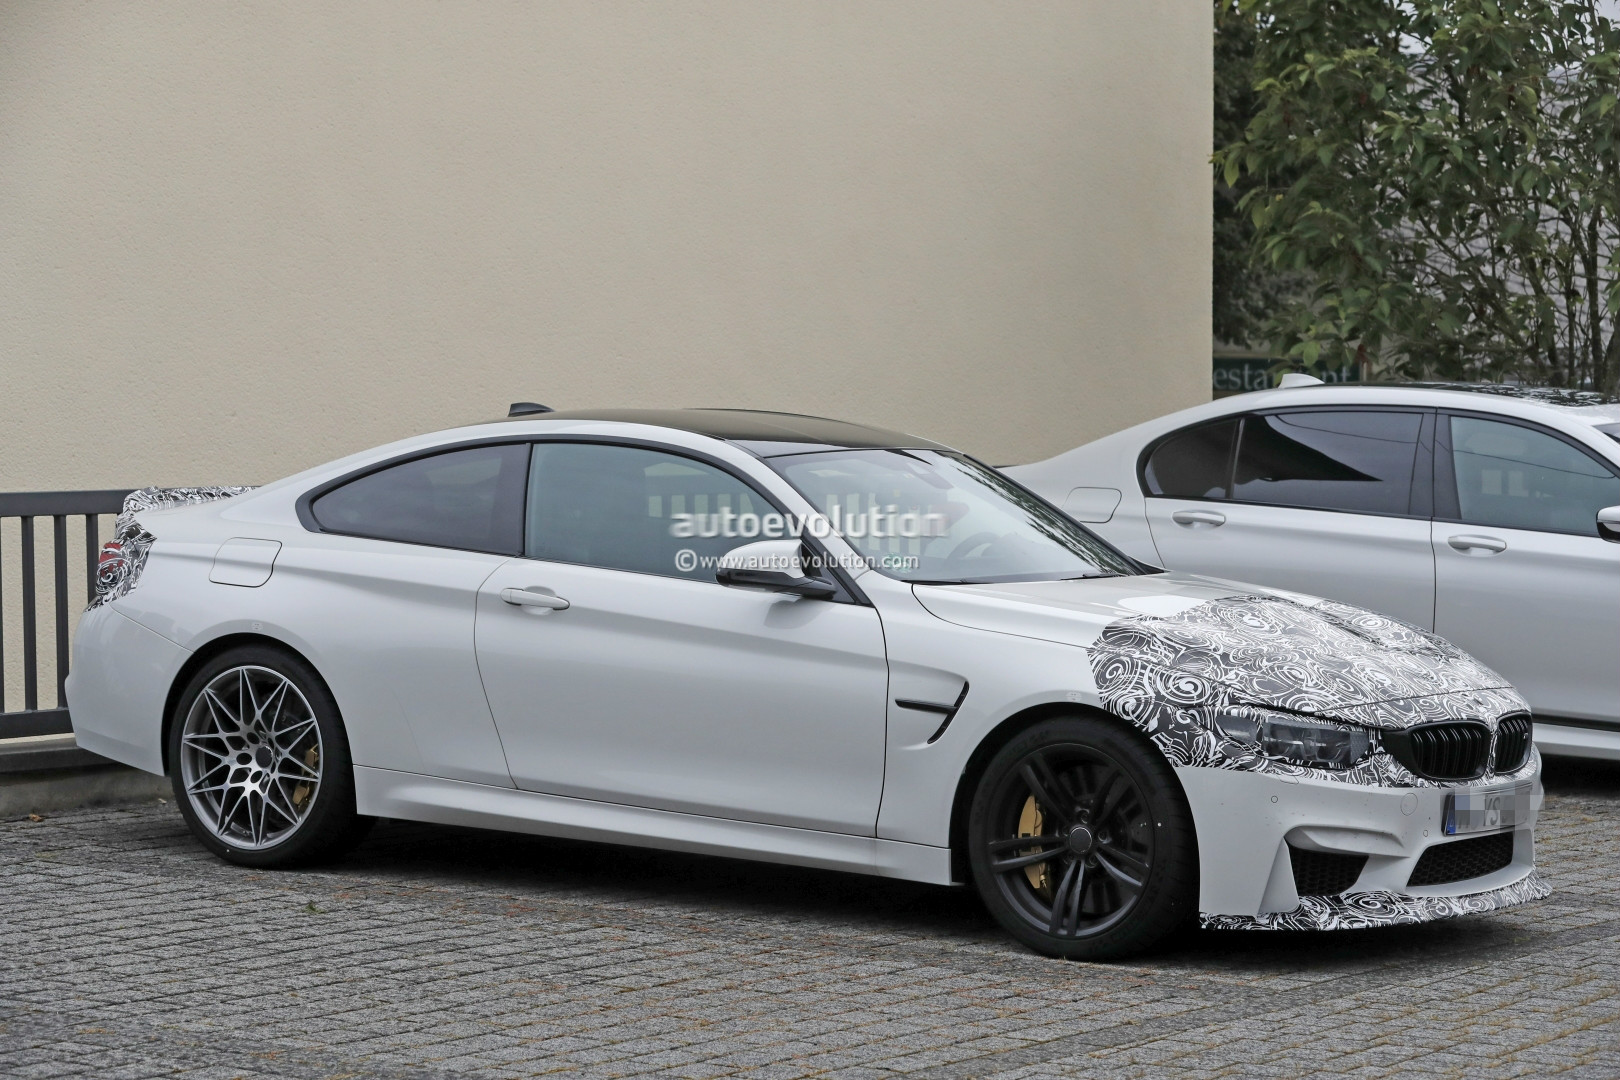 2018 Bmw M4 Facelift Cs Special Edition Spied Shows Aggressive